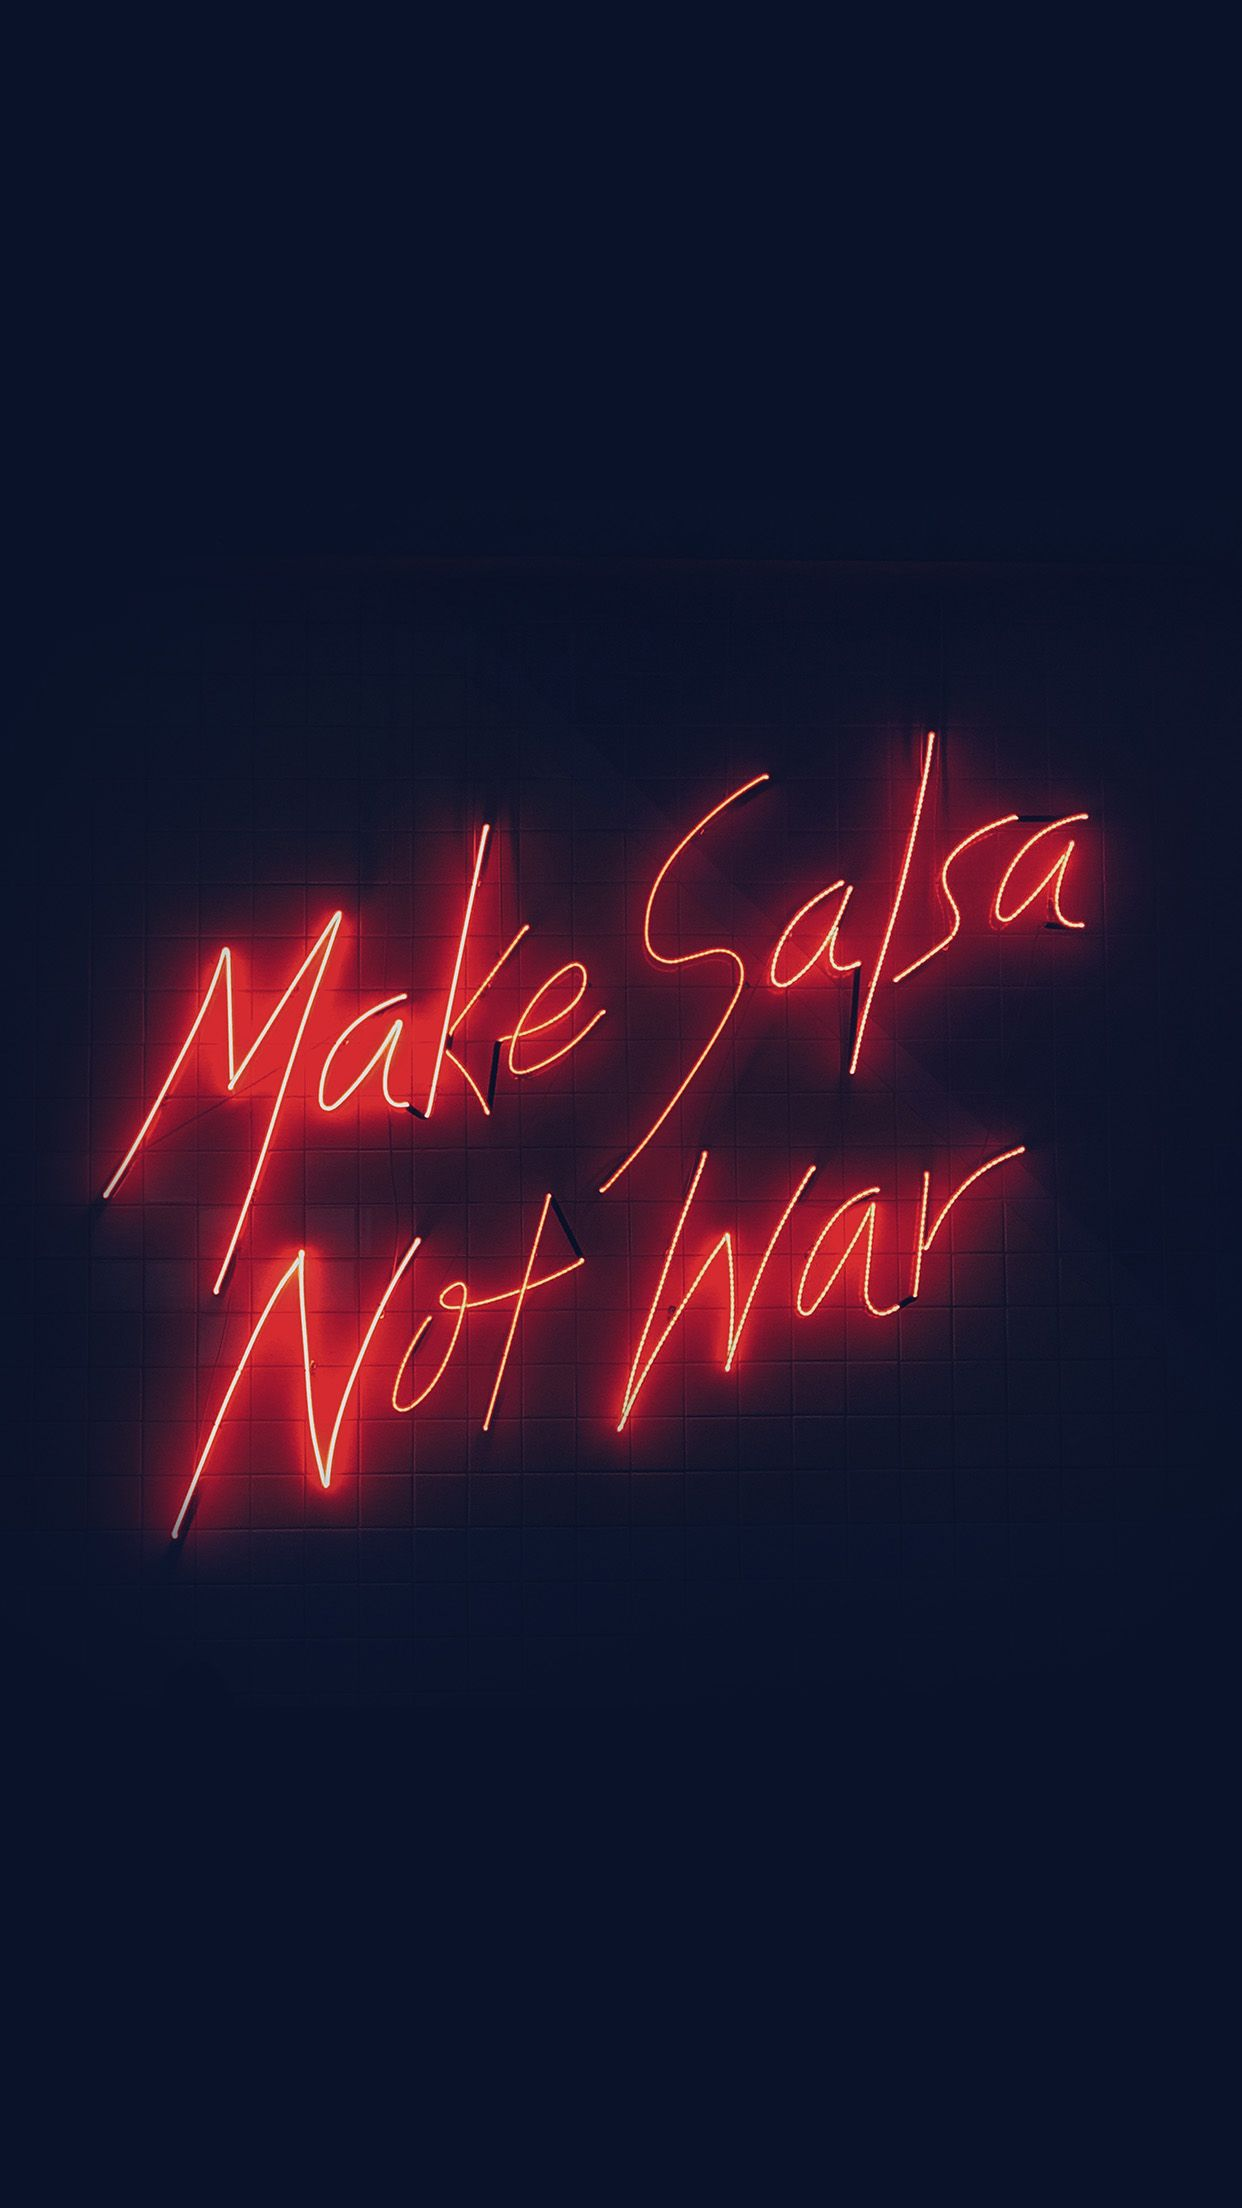 make salsa not war iphone 8 hd wallpaper | iphone 8 wallpapers